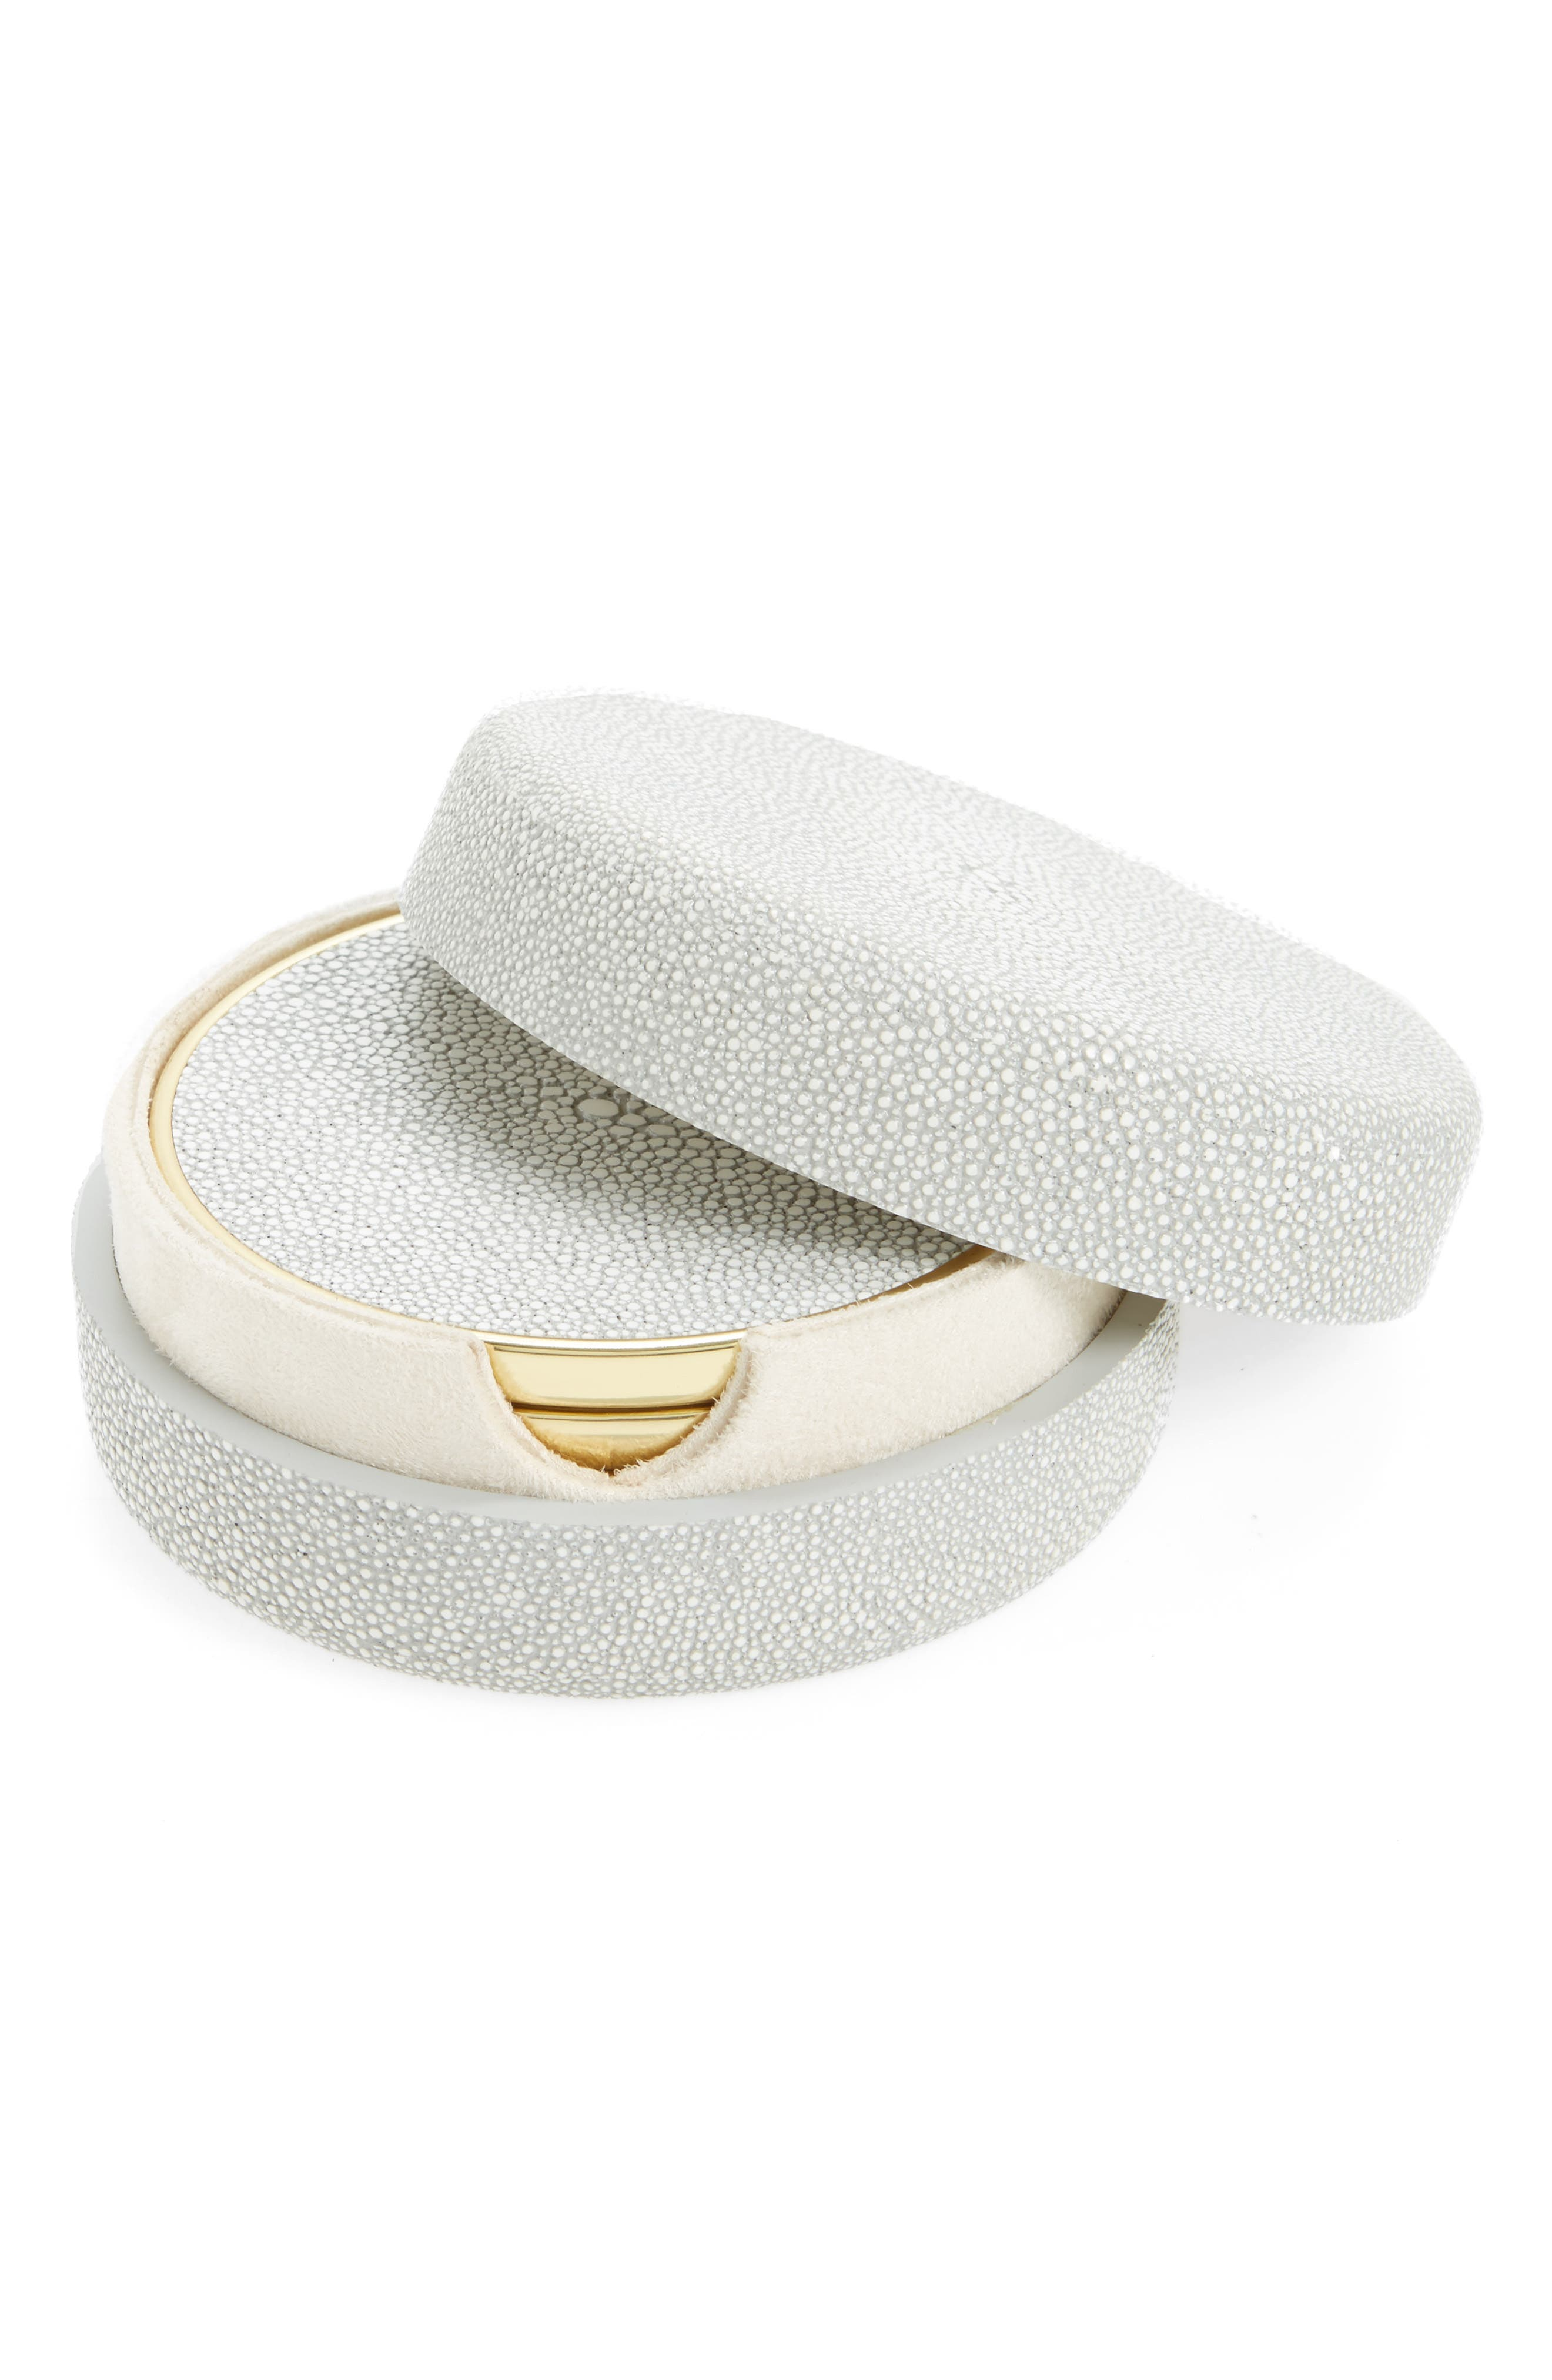 Shagreen Set of 4 Coasters with Lidded Holder,                         Main,                         color, 020